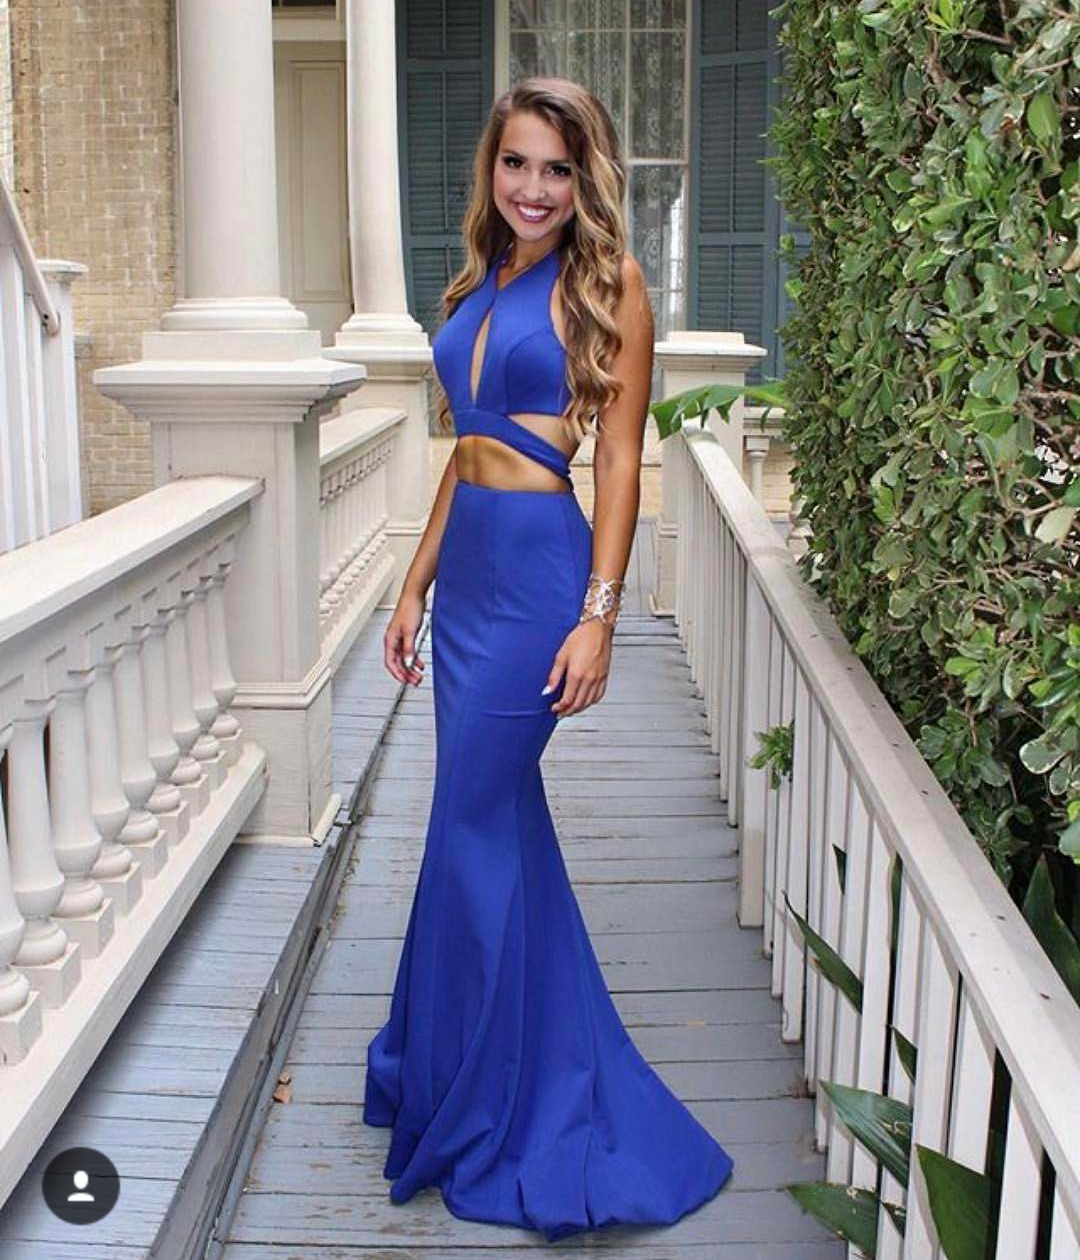 c15aef25e2 Royal Blue Mermaid Prom Dress